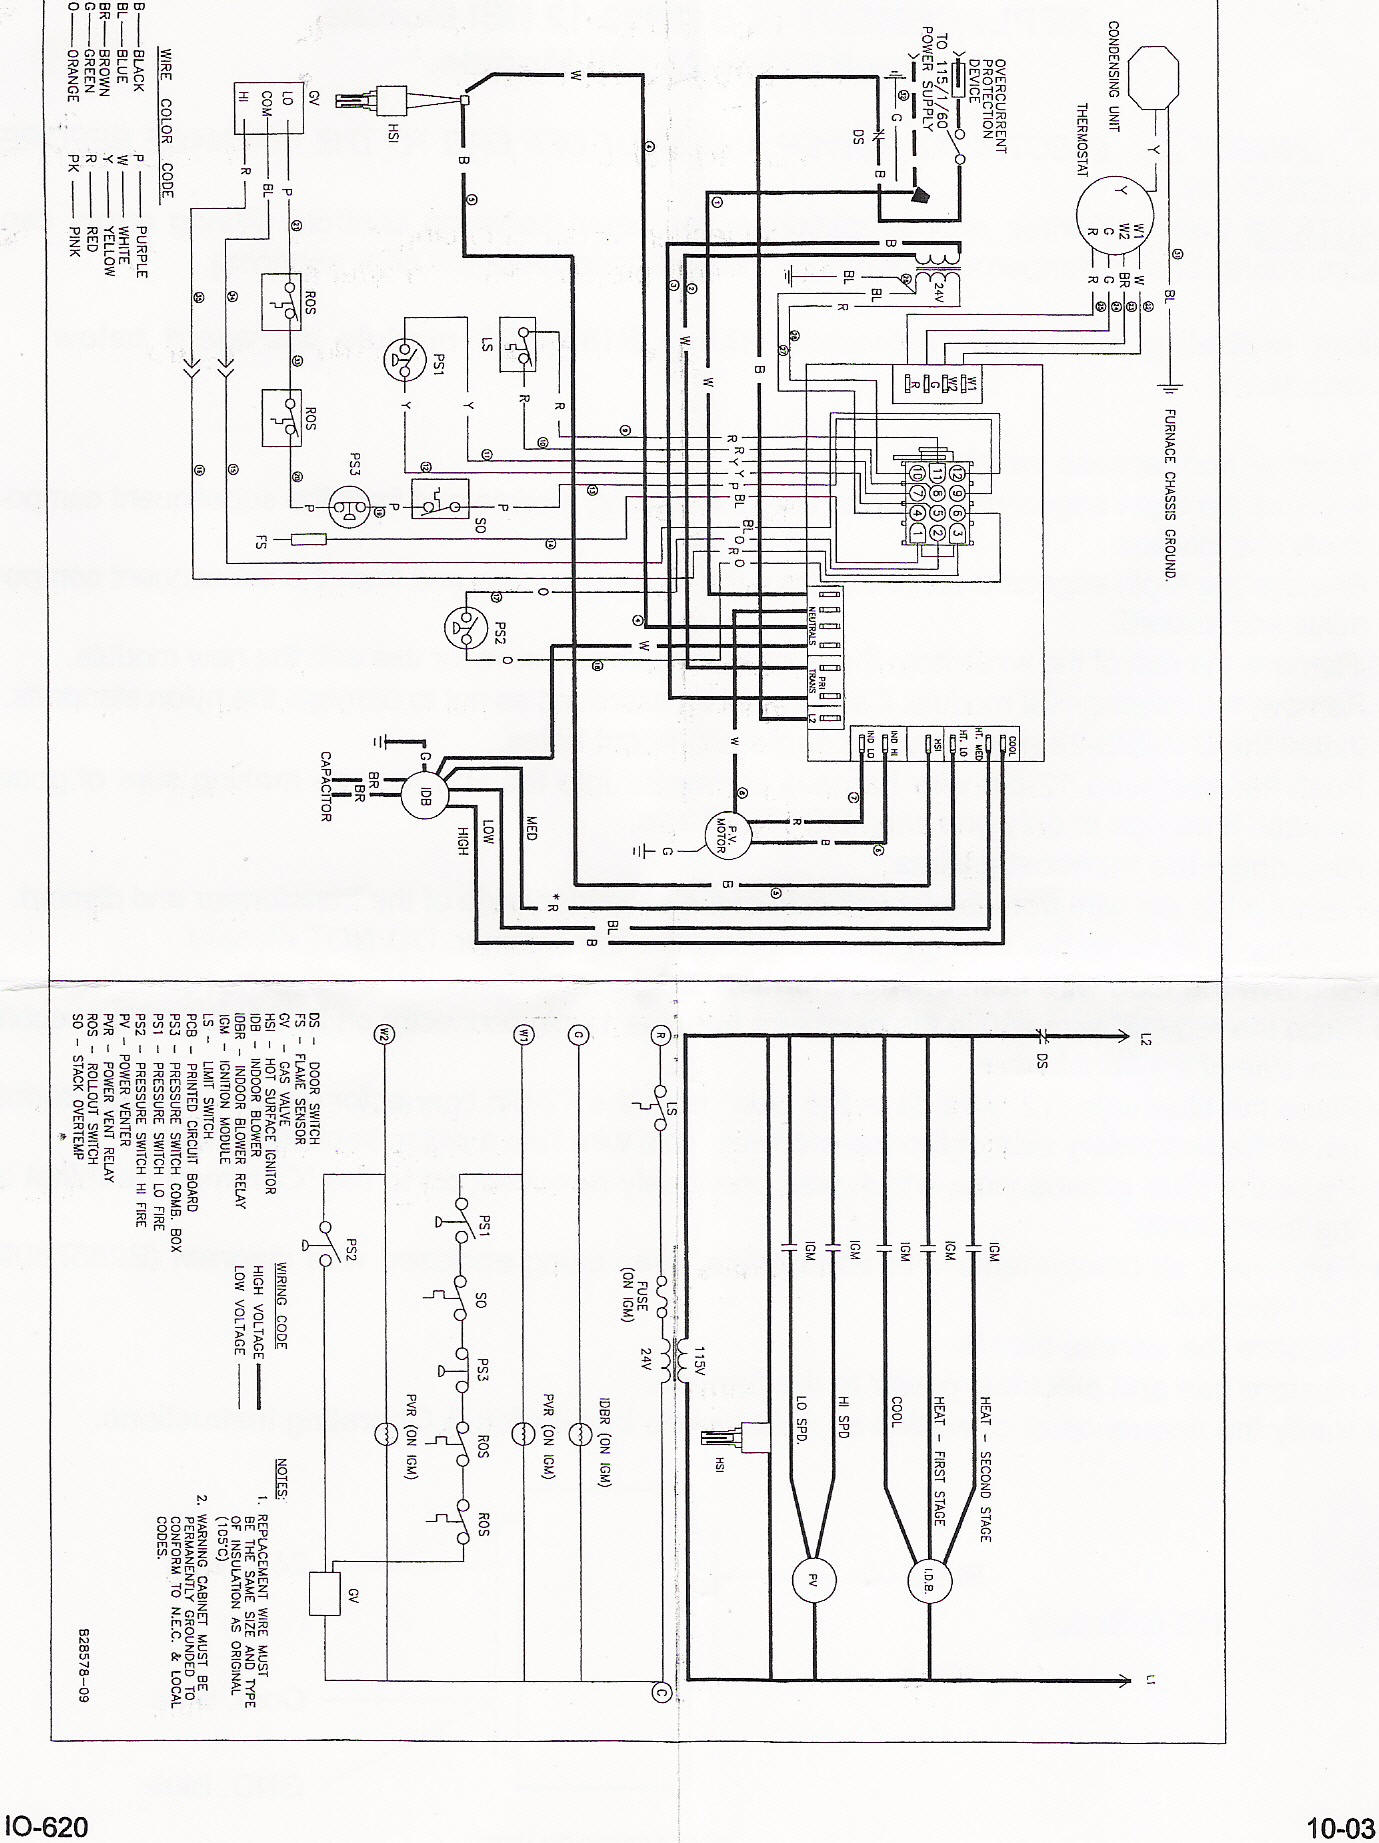 Trane Economizer Wiring And Diagram Library Diagrams Goodman Control Board B18099 23 Instructions Rh Myhvacparts Com Curtis Controller Honeywell Thermostat